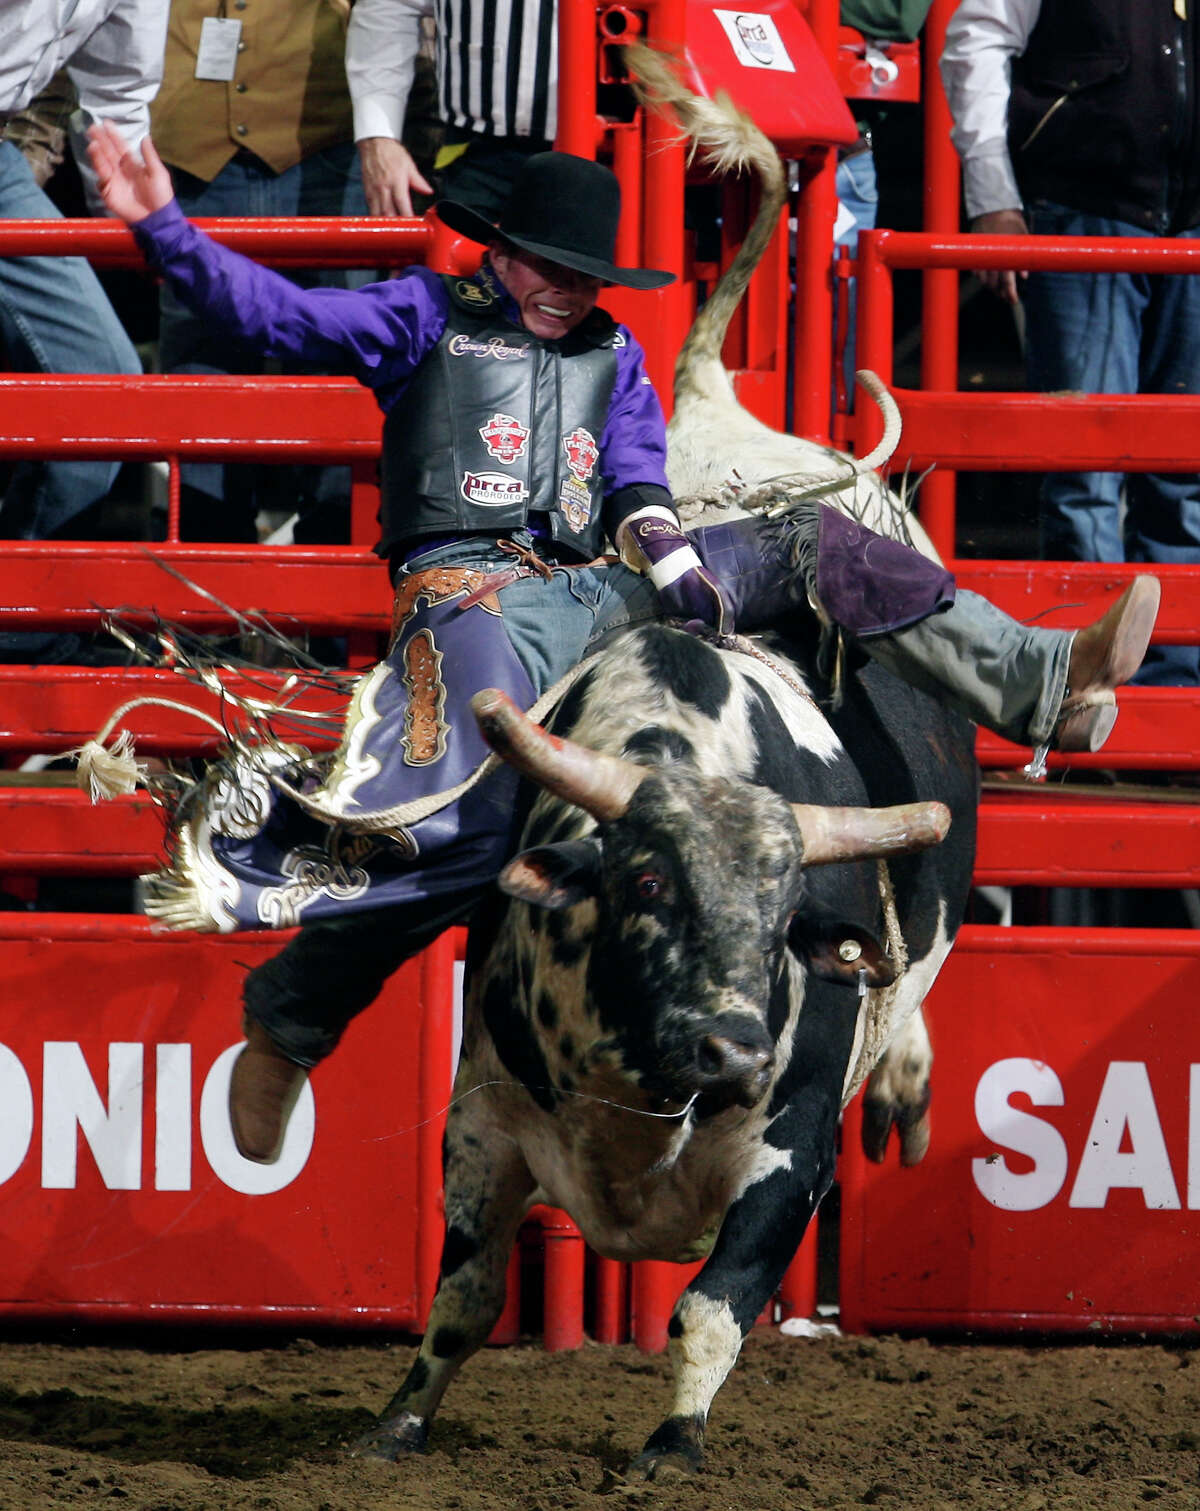 Steve Woolsey, from Payson, UT, competes in the Bull Riding event Friday Feb. 18, 2011 during the San Antonio Stock Show & Rodeo at the AT&T Center. Woolsey scored an 88 on the ride.